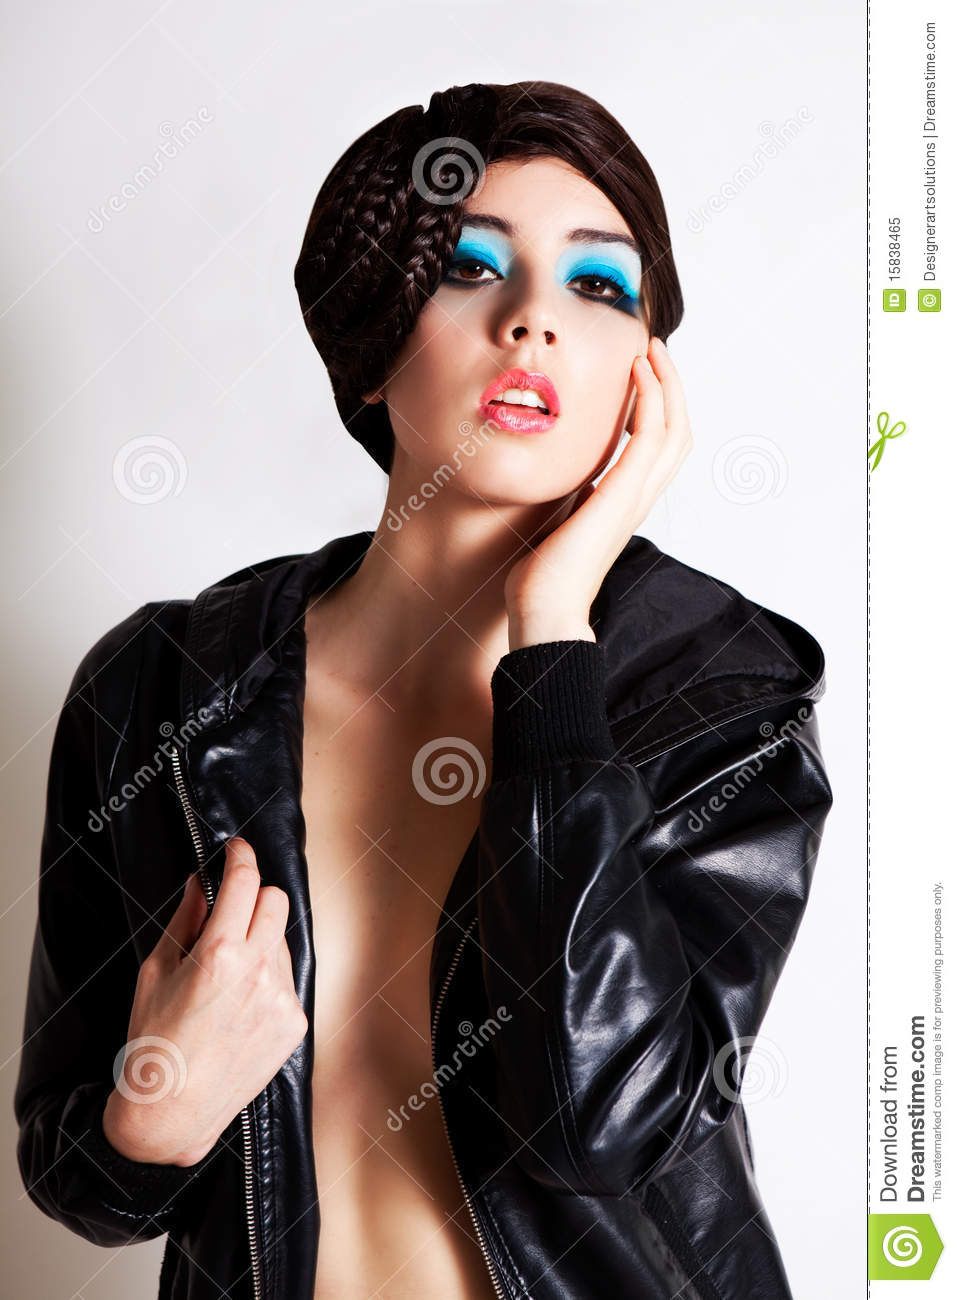 Young Woman In A Jacket With No Shirt Stock Image - Image: 15838465